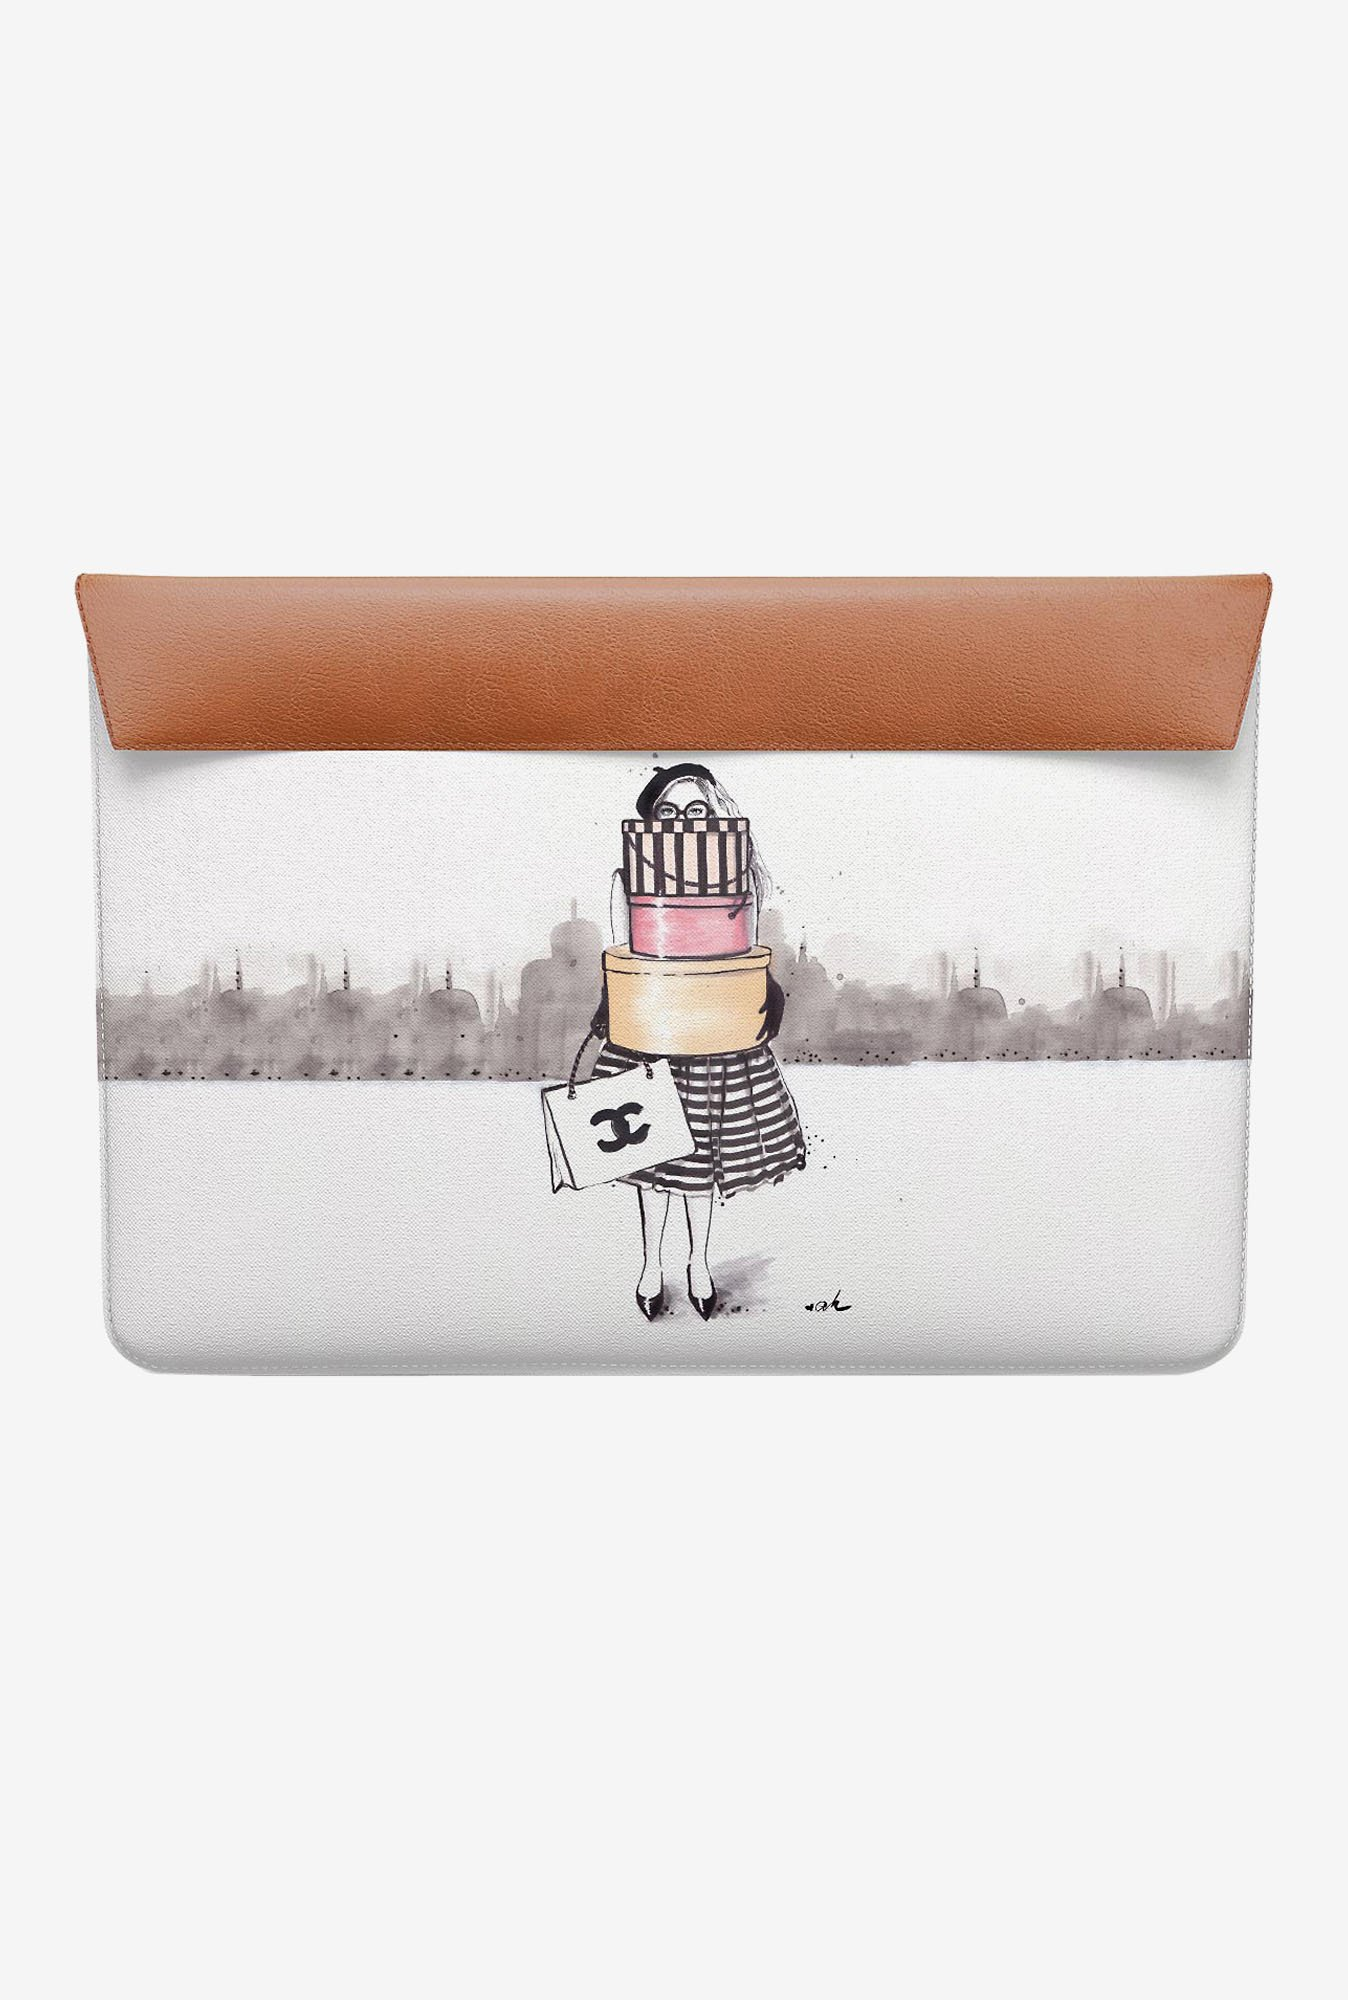 DailyObjects Shopping Junkie MacBook Pro 15 Envelope Sleeve